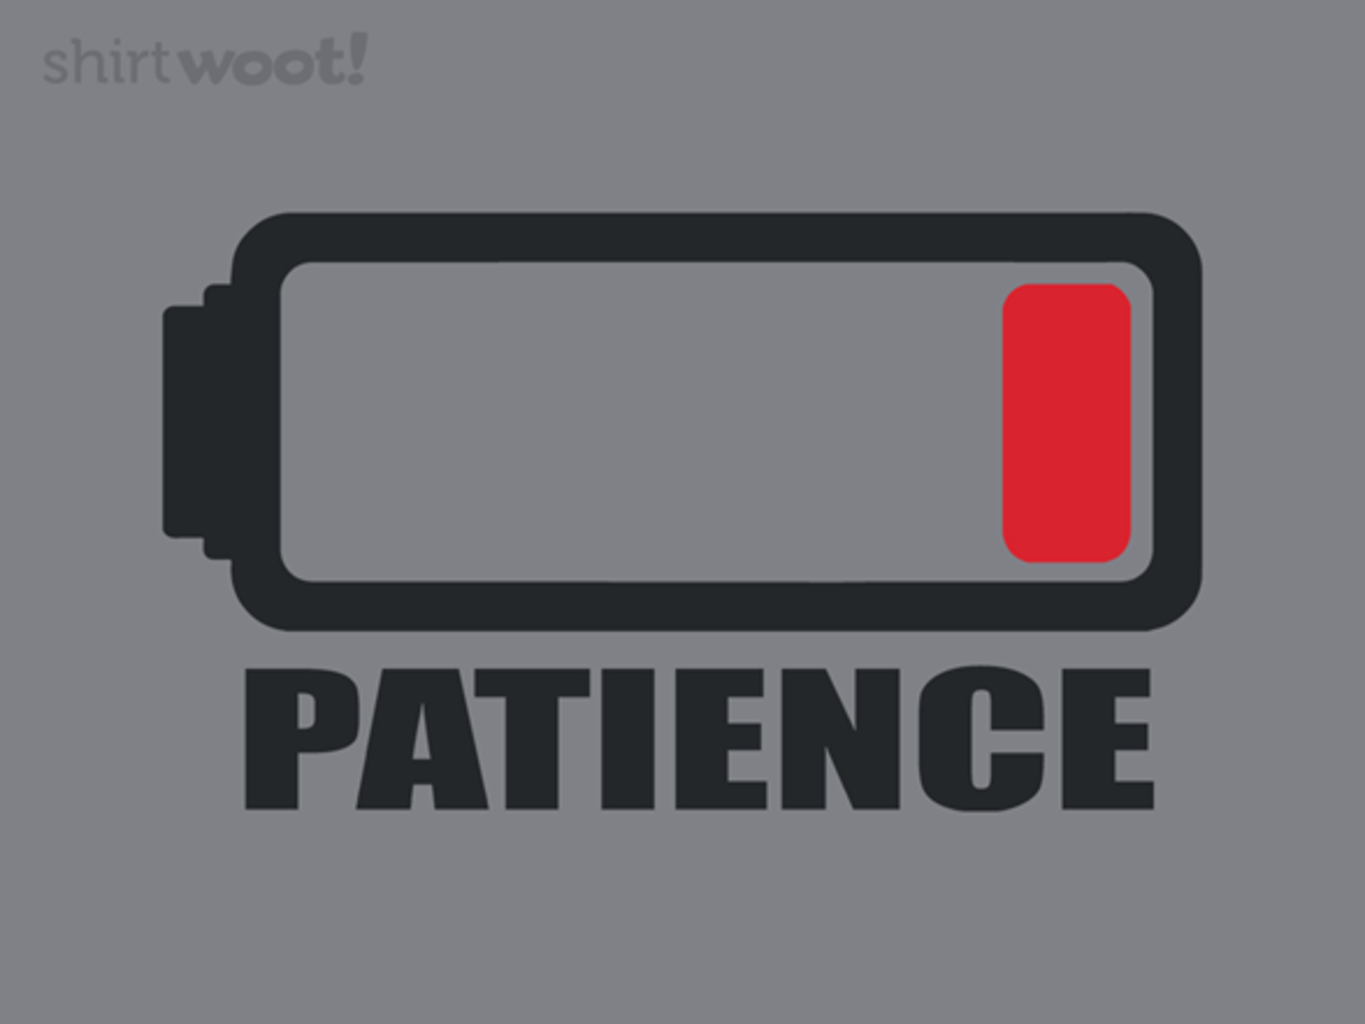 Woot!: Out of Patience